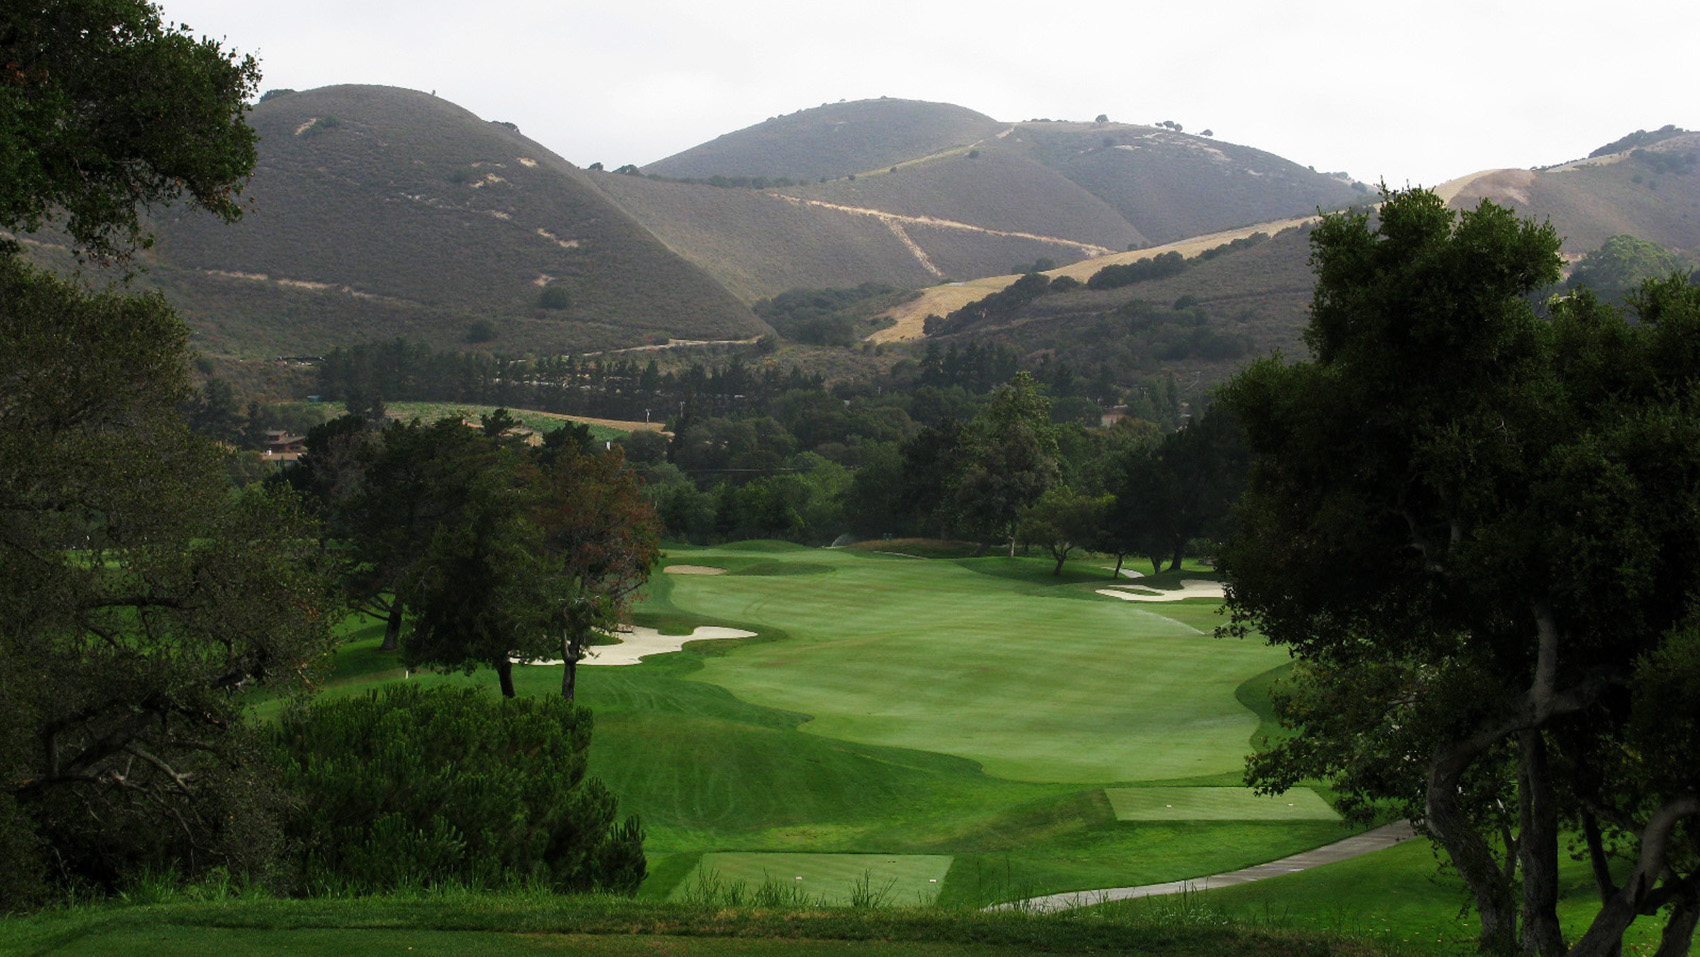 carmel valley senior personals A well earned life of leisure resort-style retirement - that may be the best way to describe the lifestyle at carmel valley manor, a continuing care retirement community or life plan community.